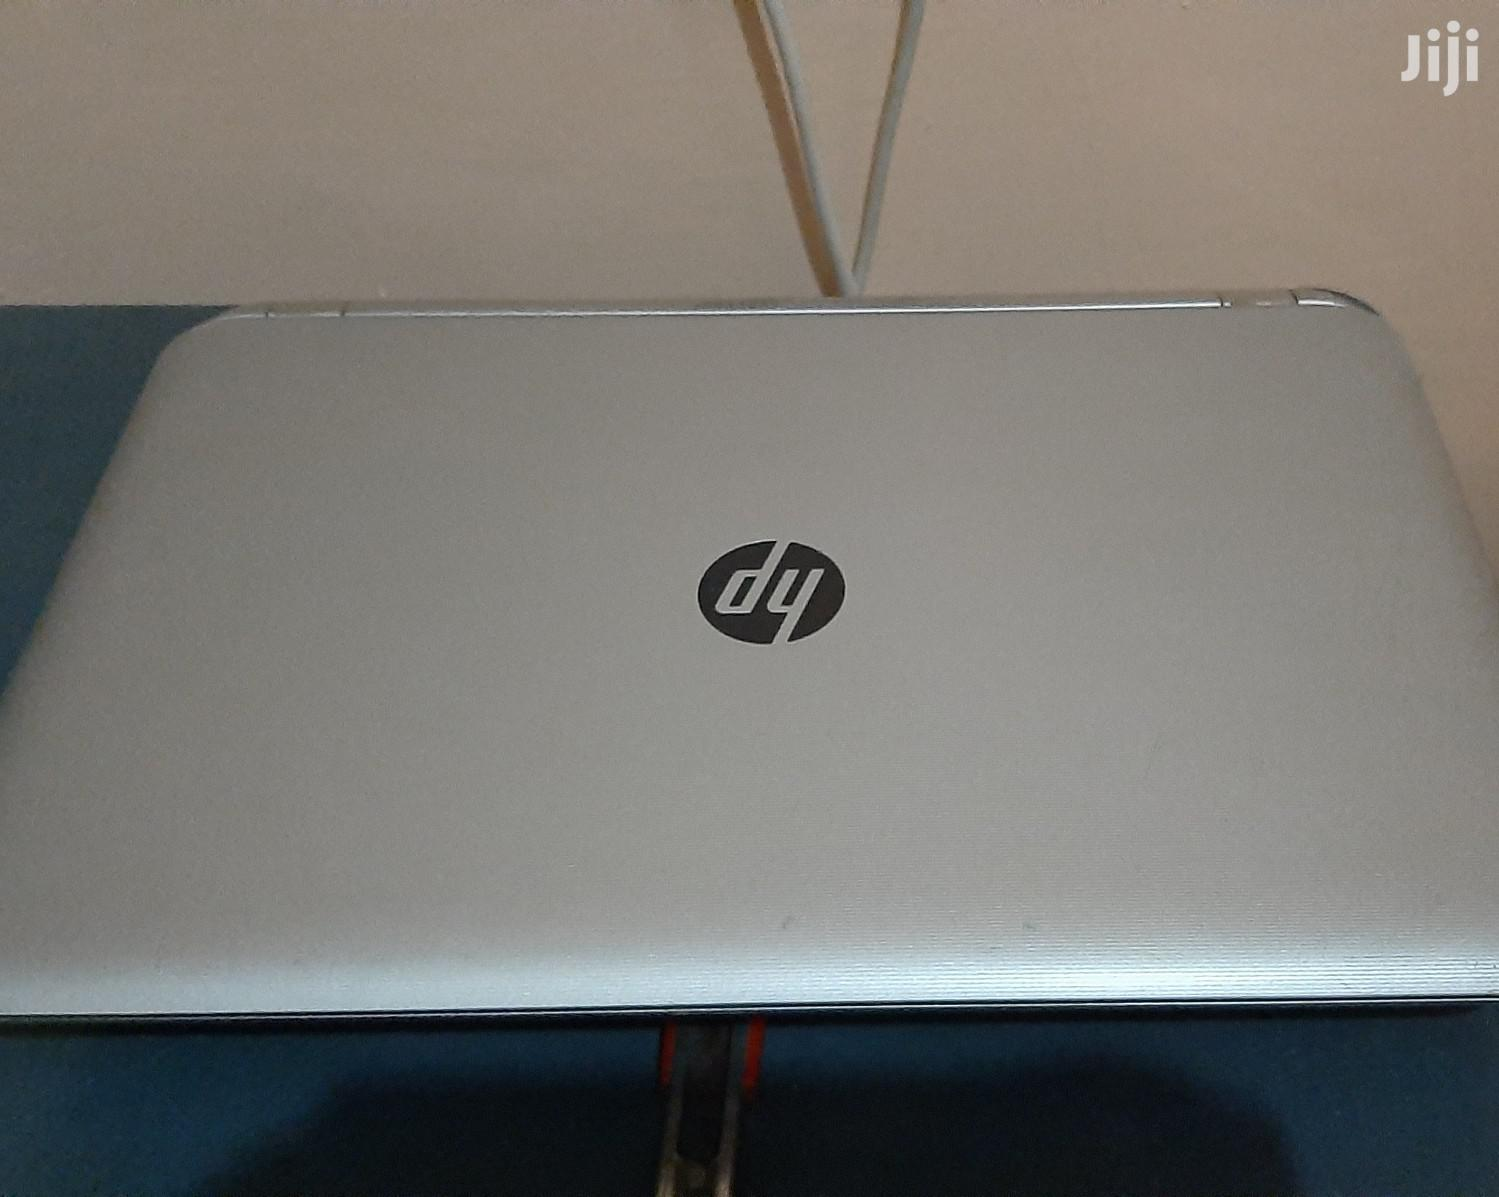 Laptop HP Pavilion 15 4GB Intel Core i5 HDD 750GB | Laptops & Computers for sale in Tesano, Greater Accra, Ghana